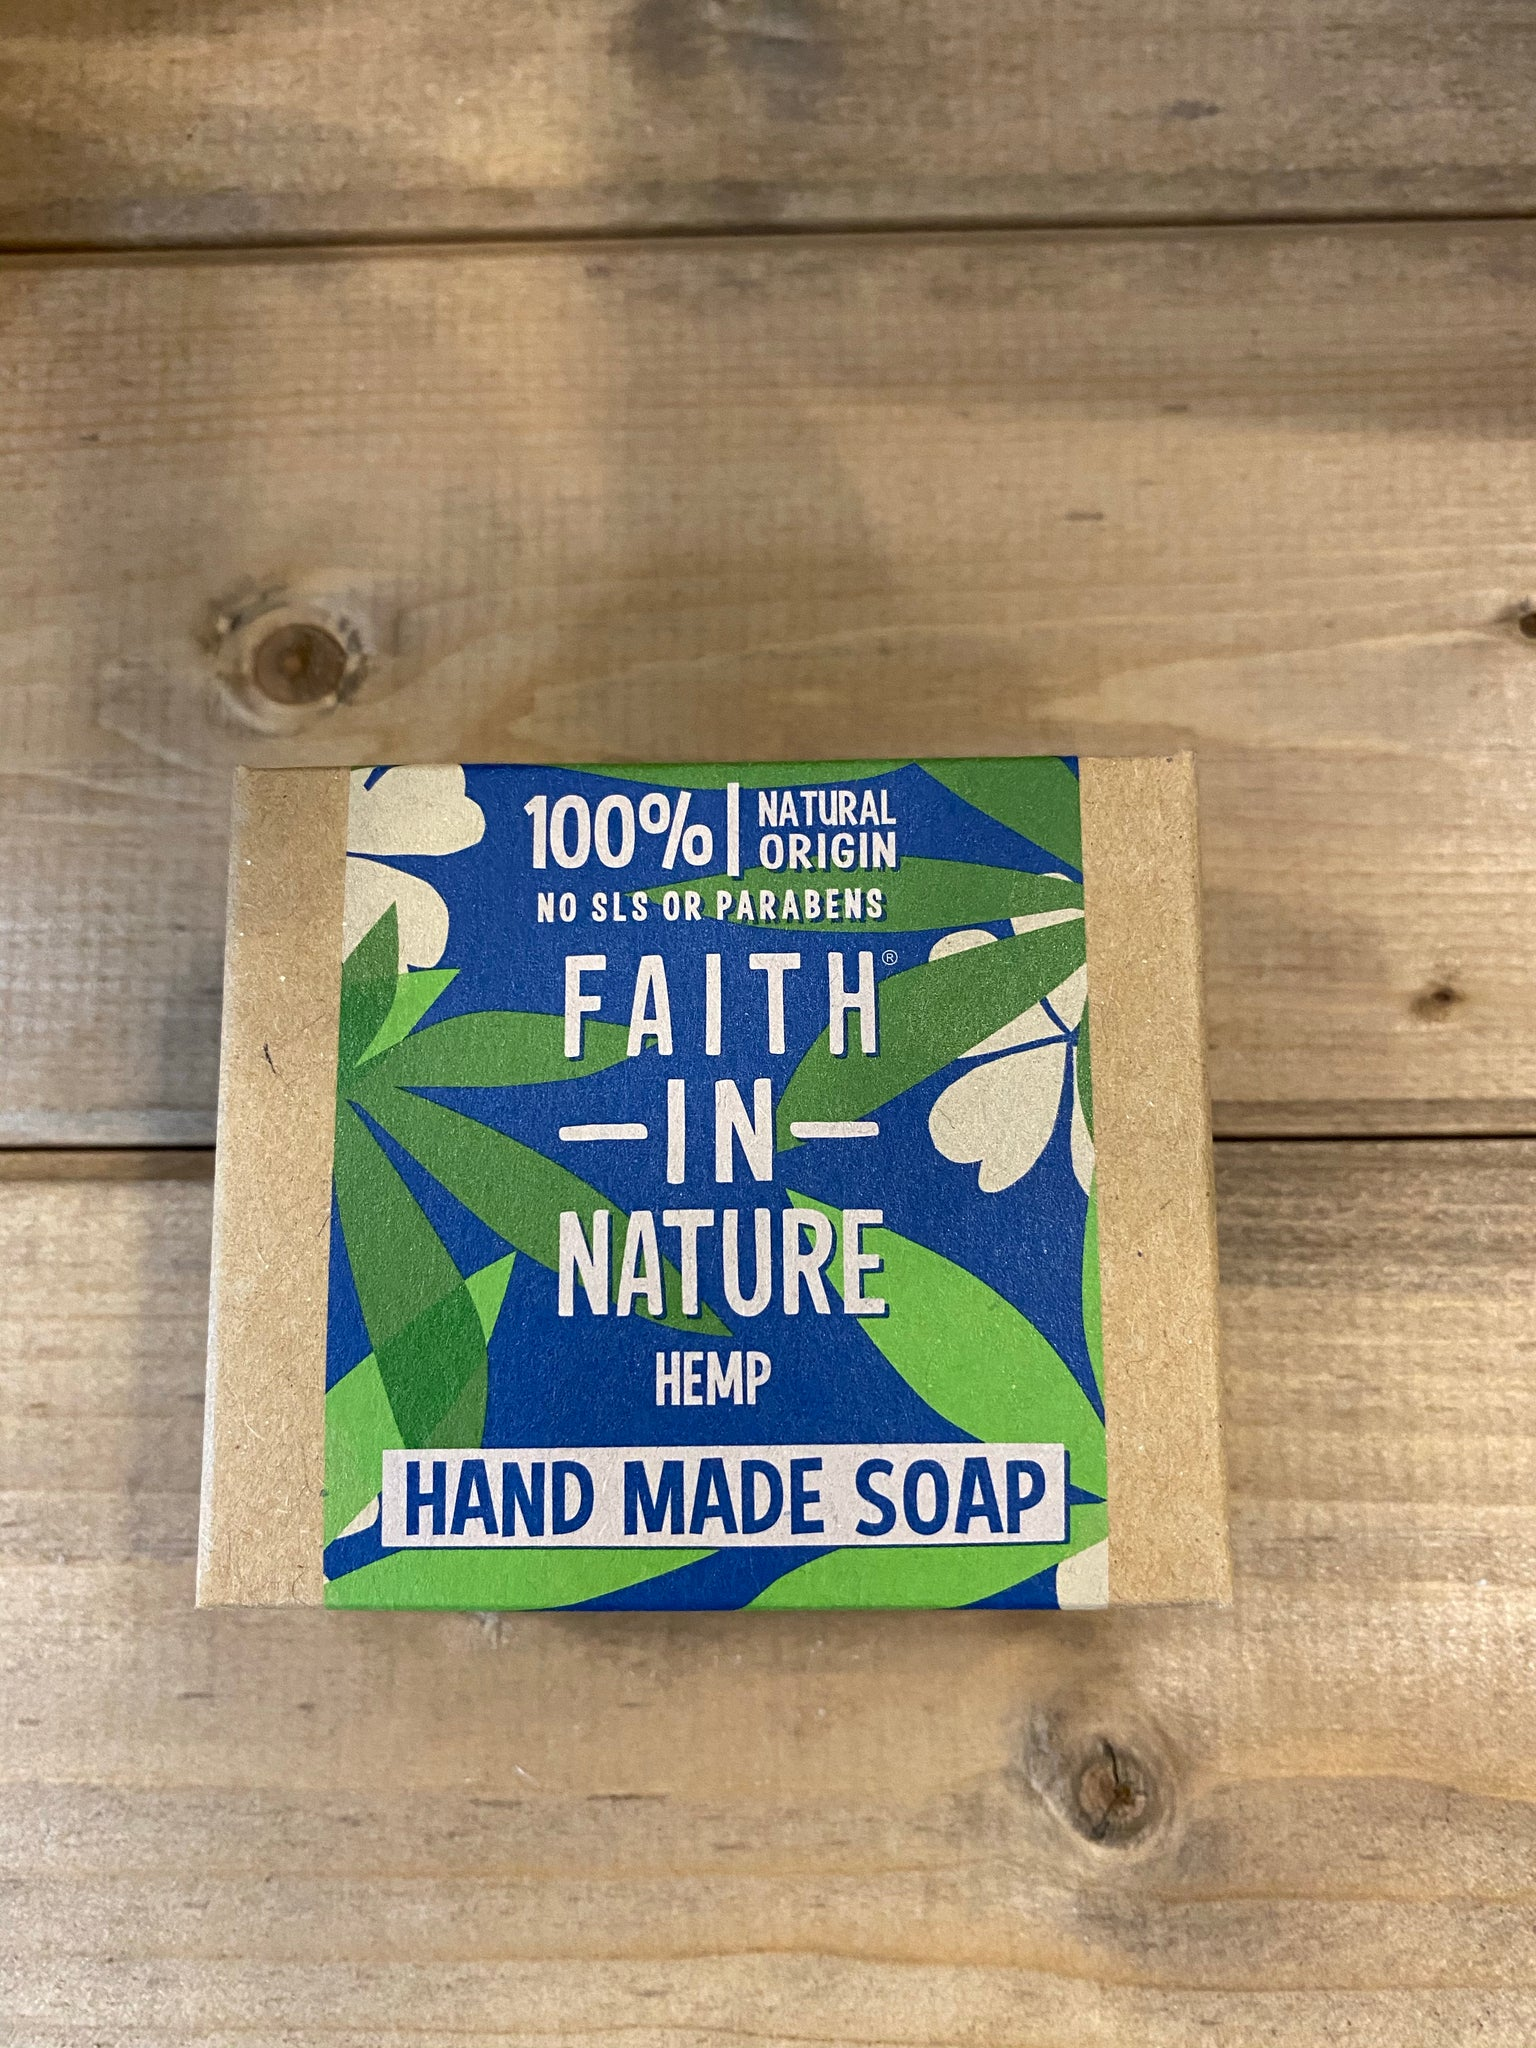 Faith in Nature Hemp Hand Made Soap